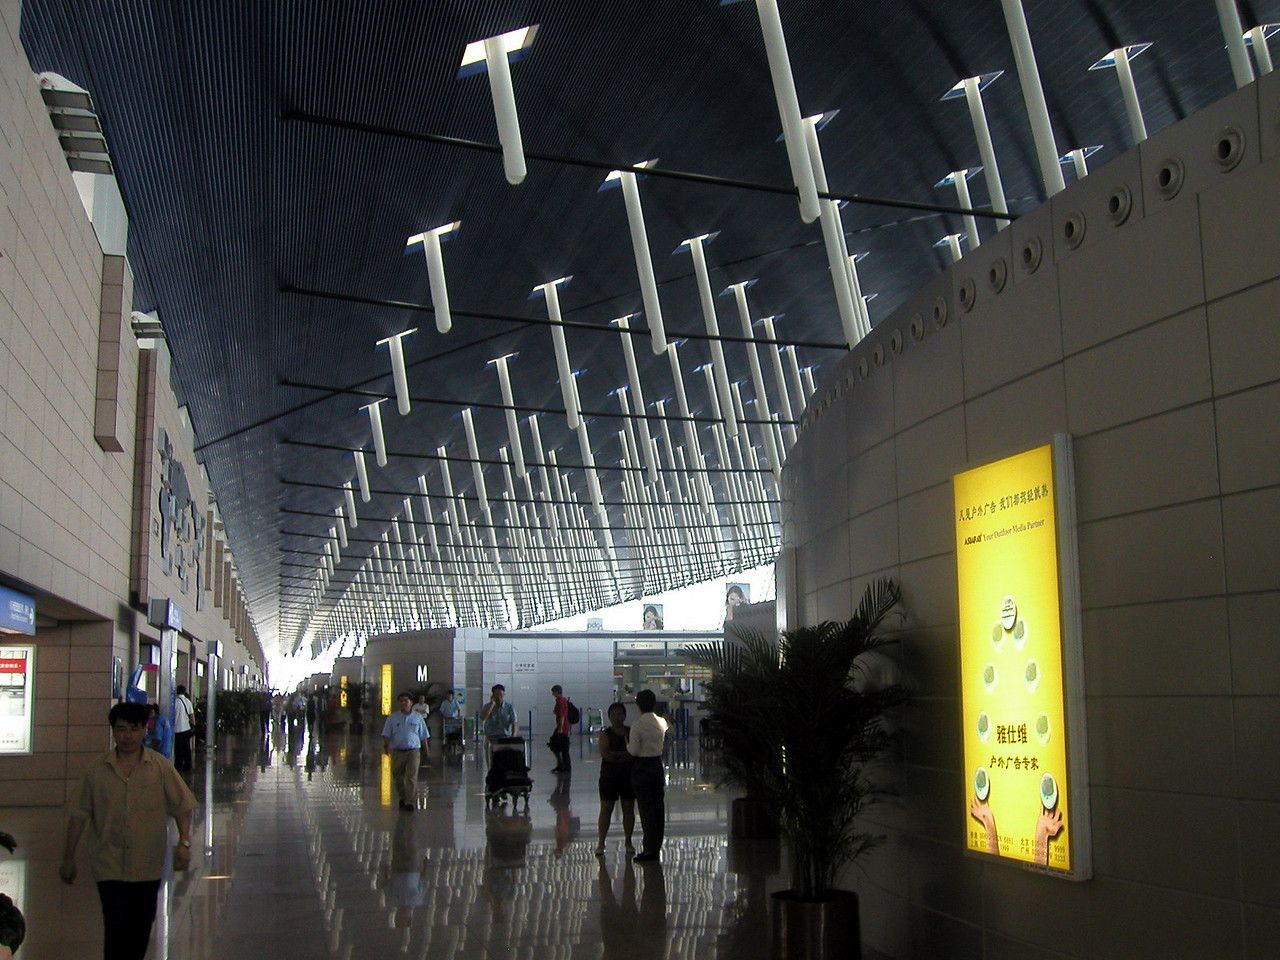 Pudong Airport, july 2004.